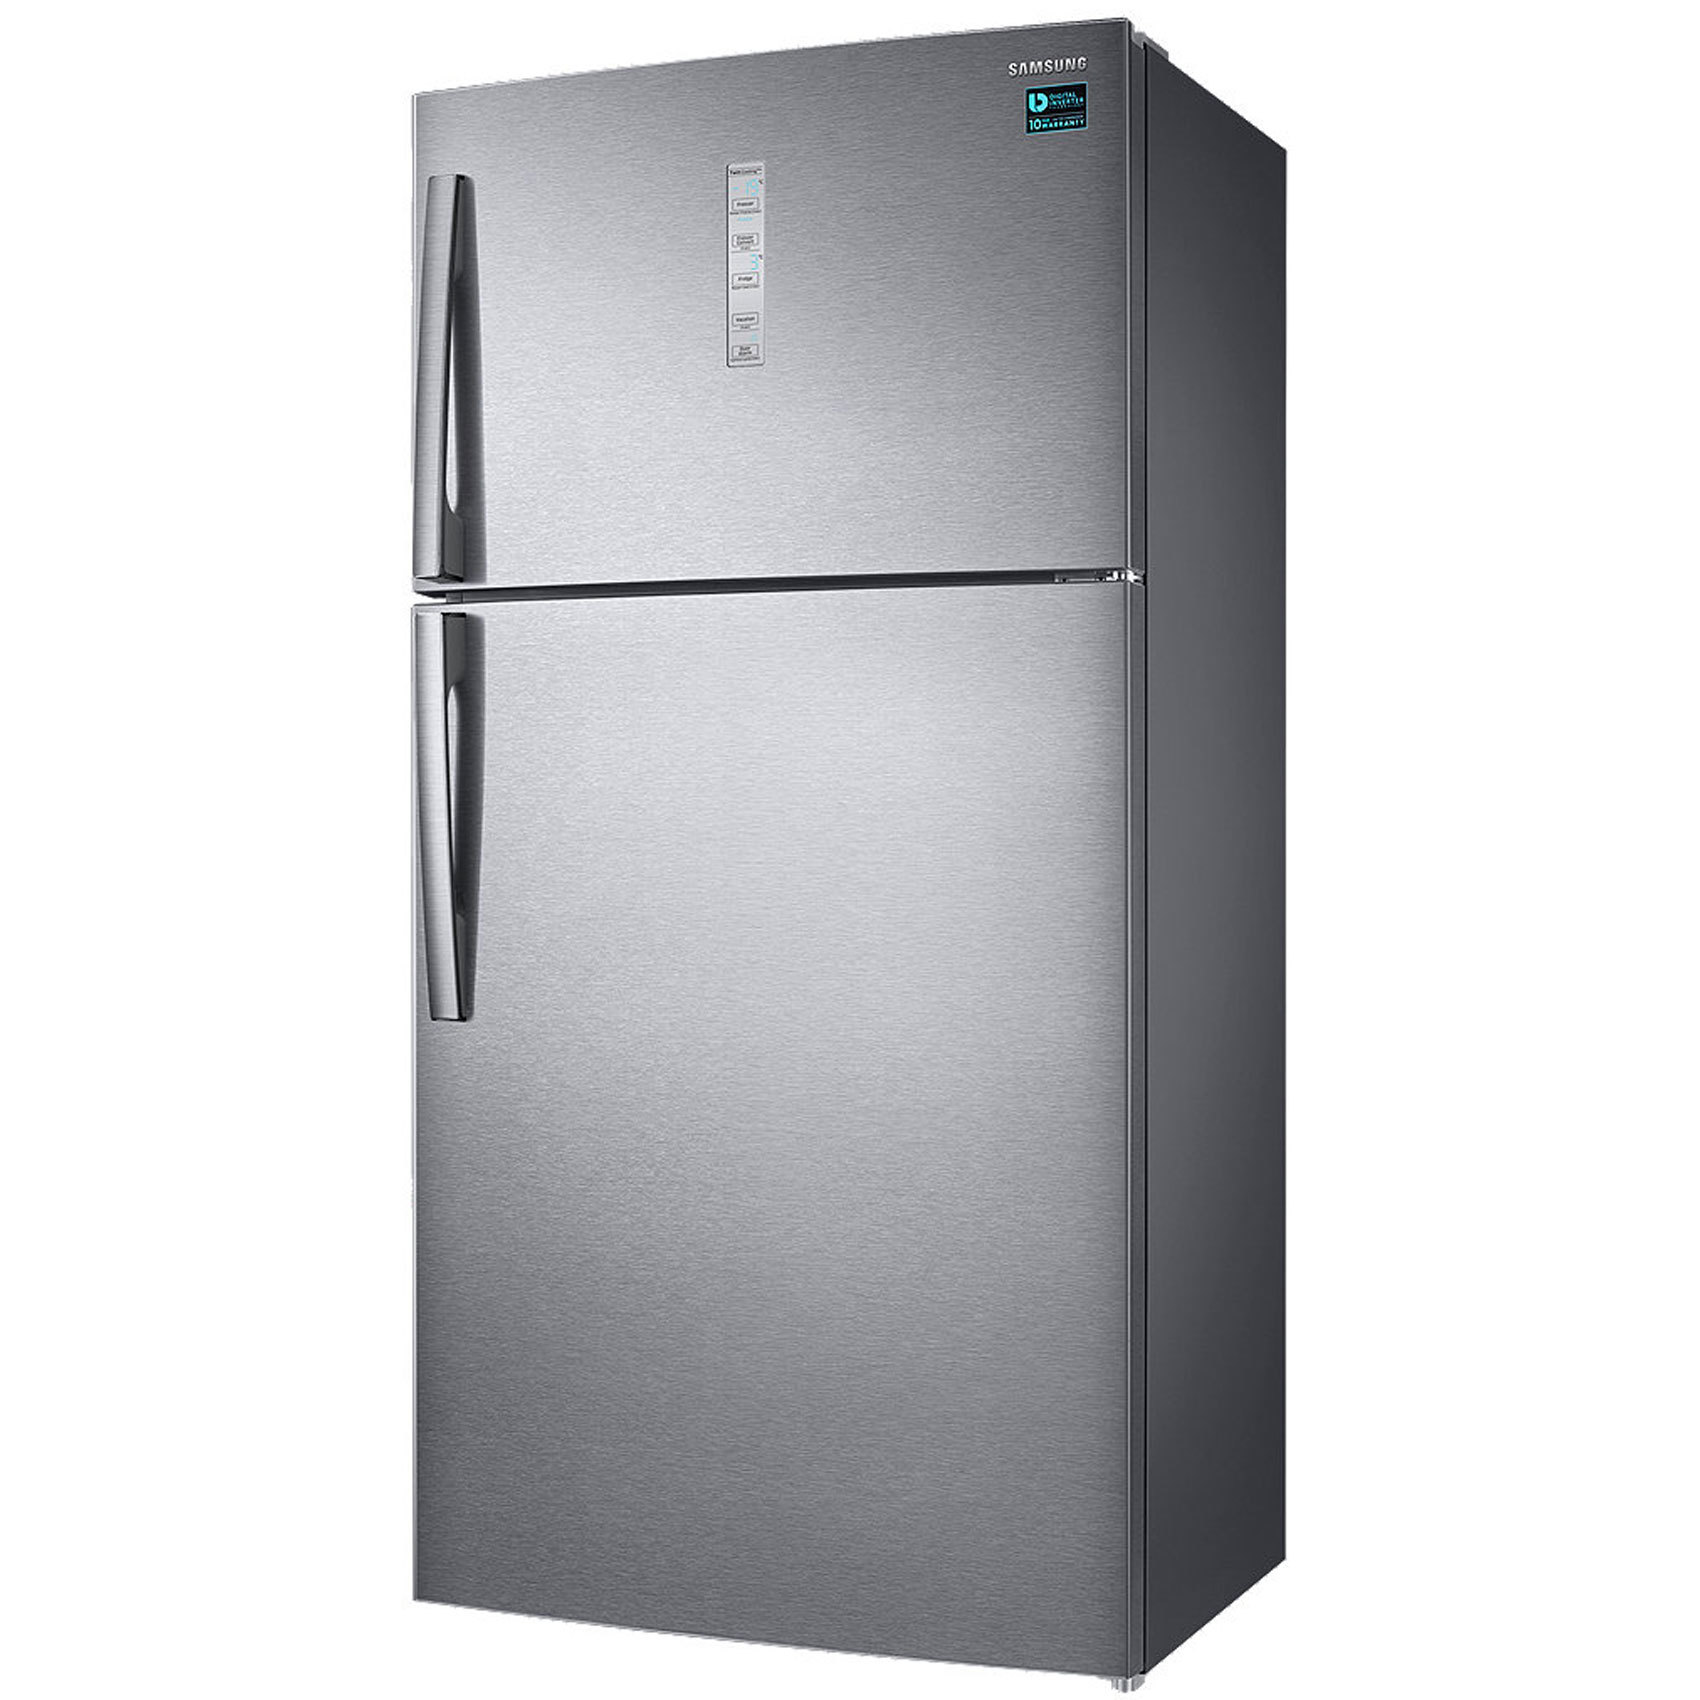 SAMSUNG FRIDGE RT81K7010SL 810L